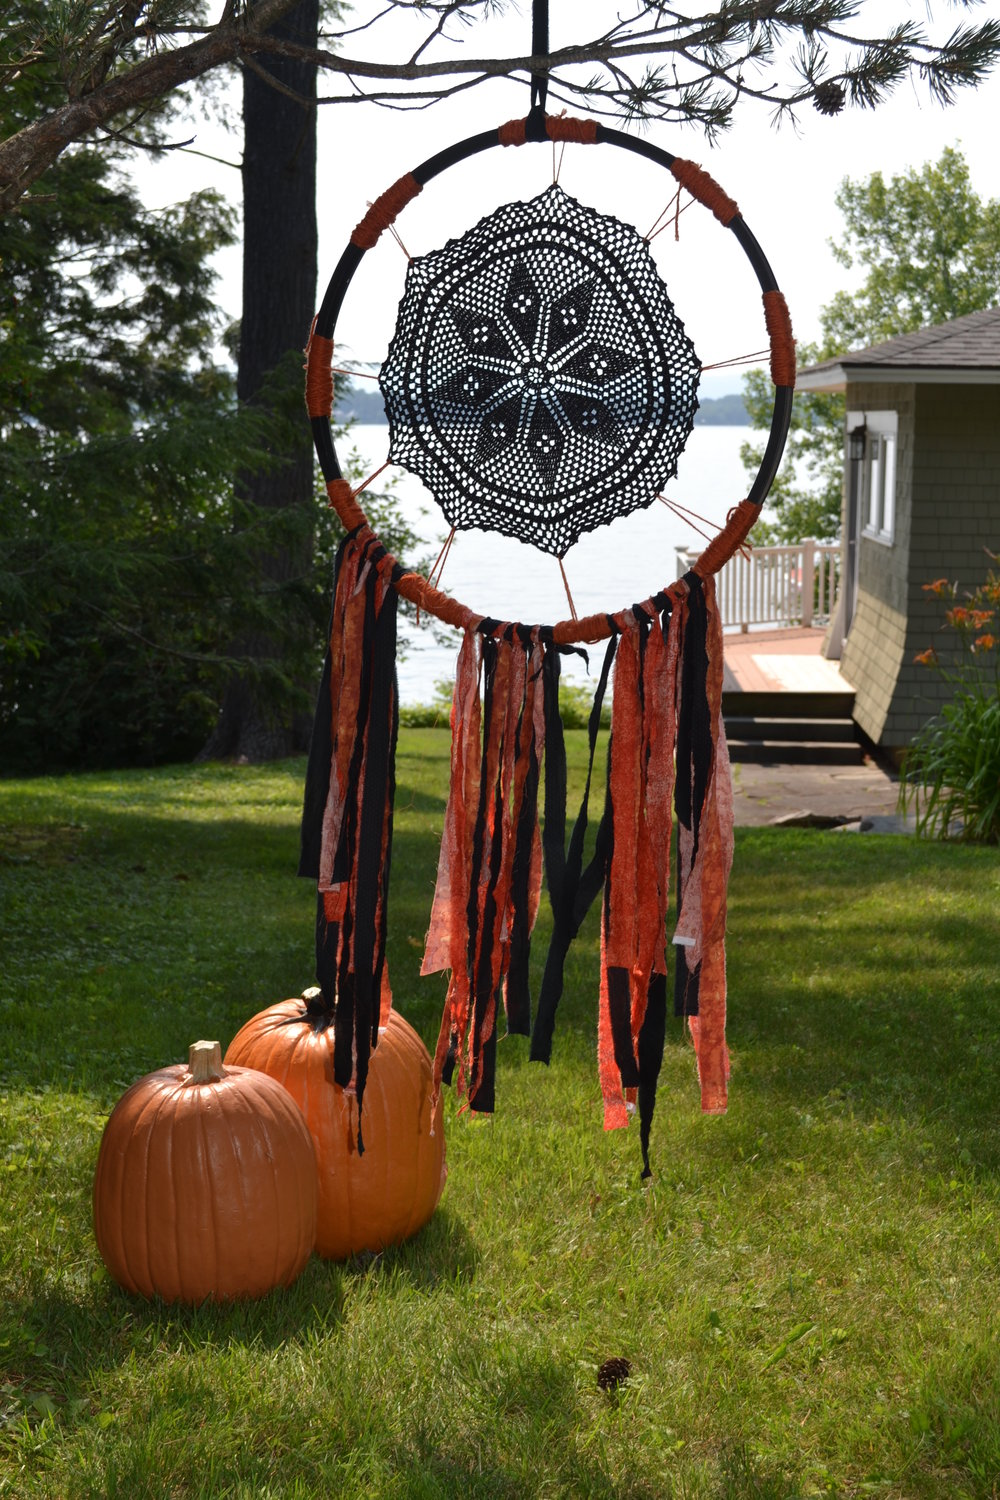 I call this my nightmare catcher. You can make them from an old bicycle tire rim, a vintage dollie painted black, some yarn and scraps of fabric. Hang them in the trees around the house, great for a Halloween party.